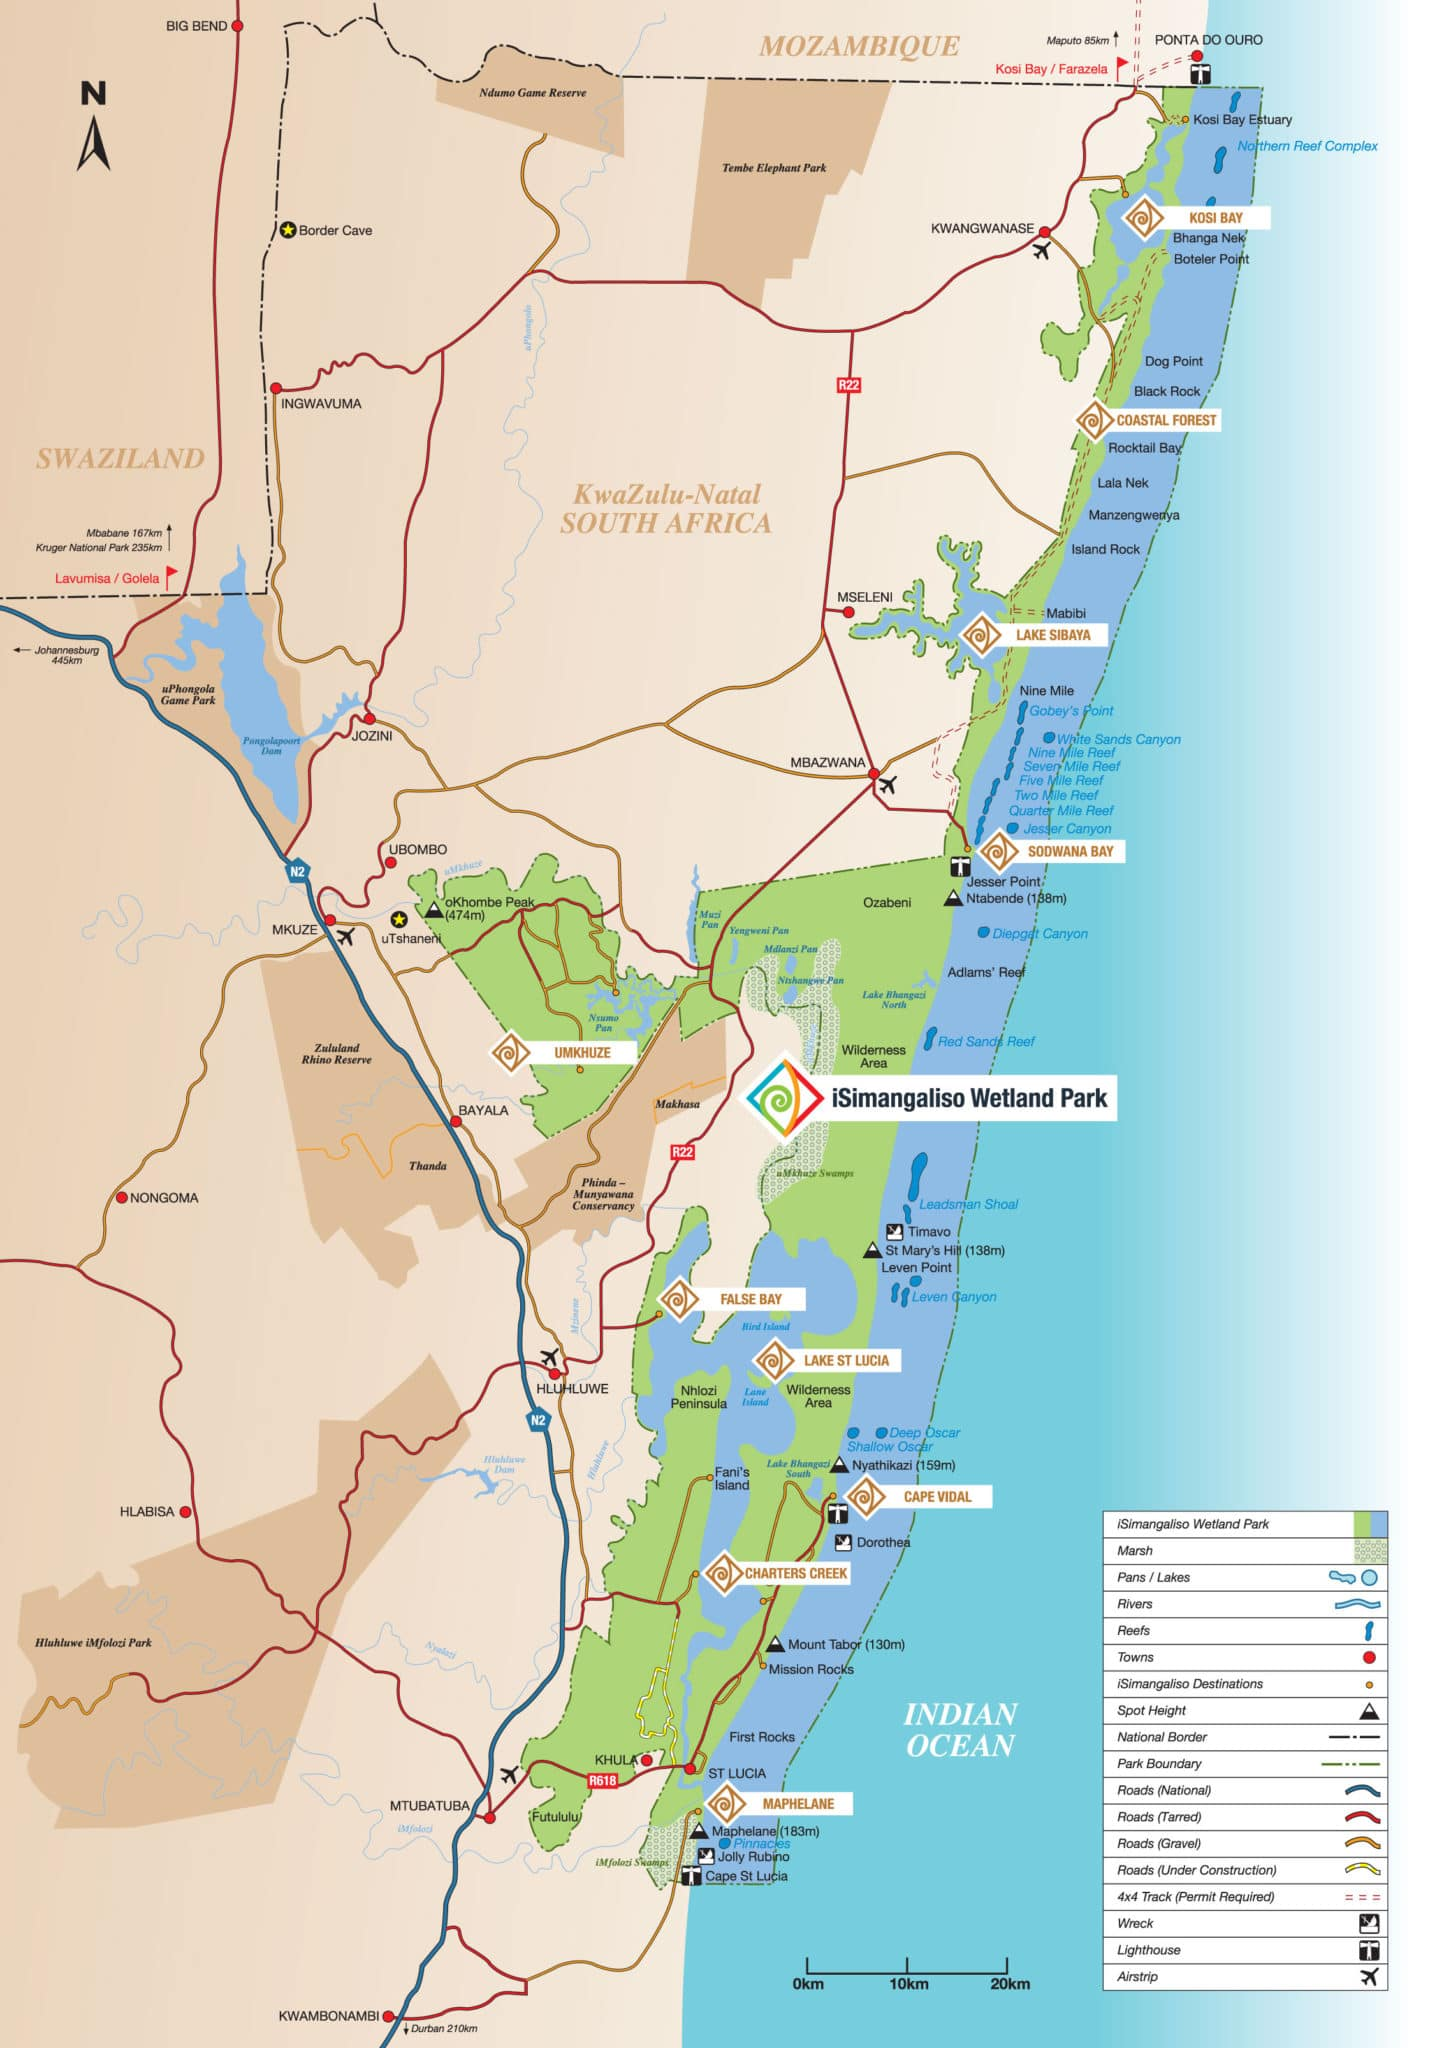 iSimangaliso wetland park gate access points map